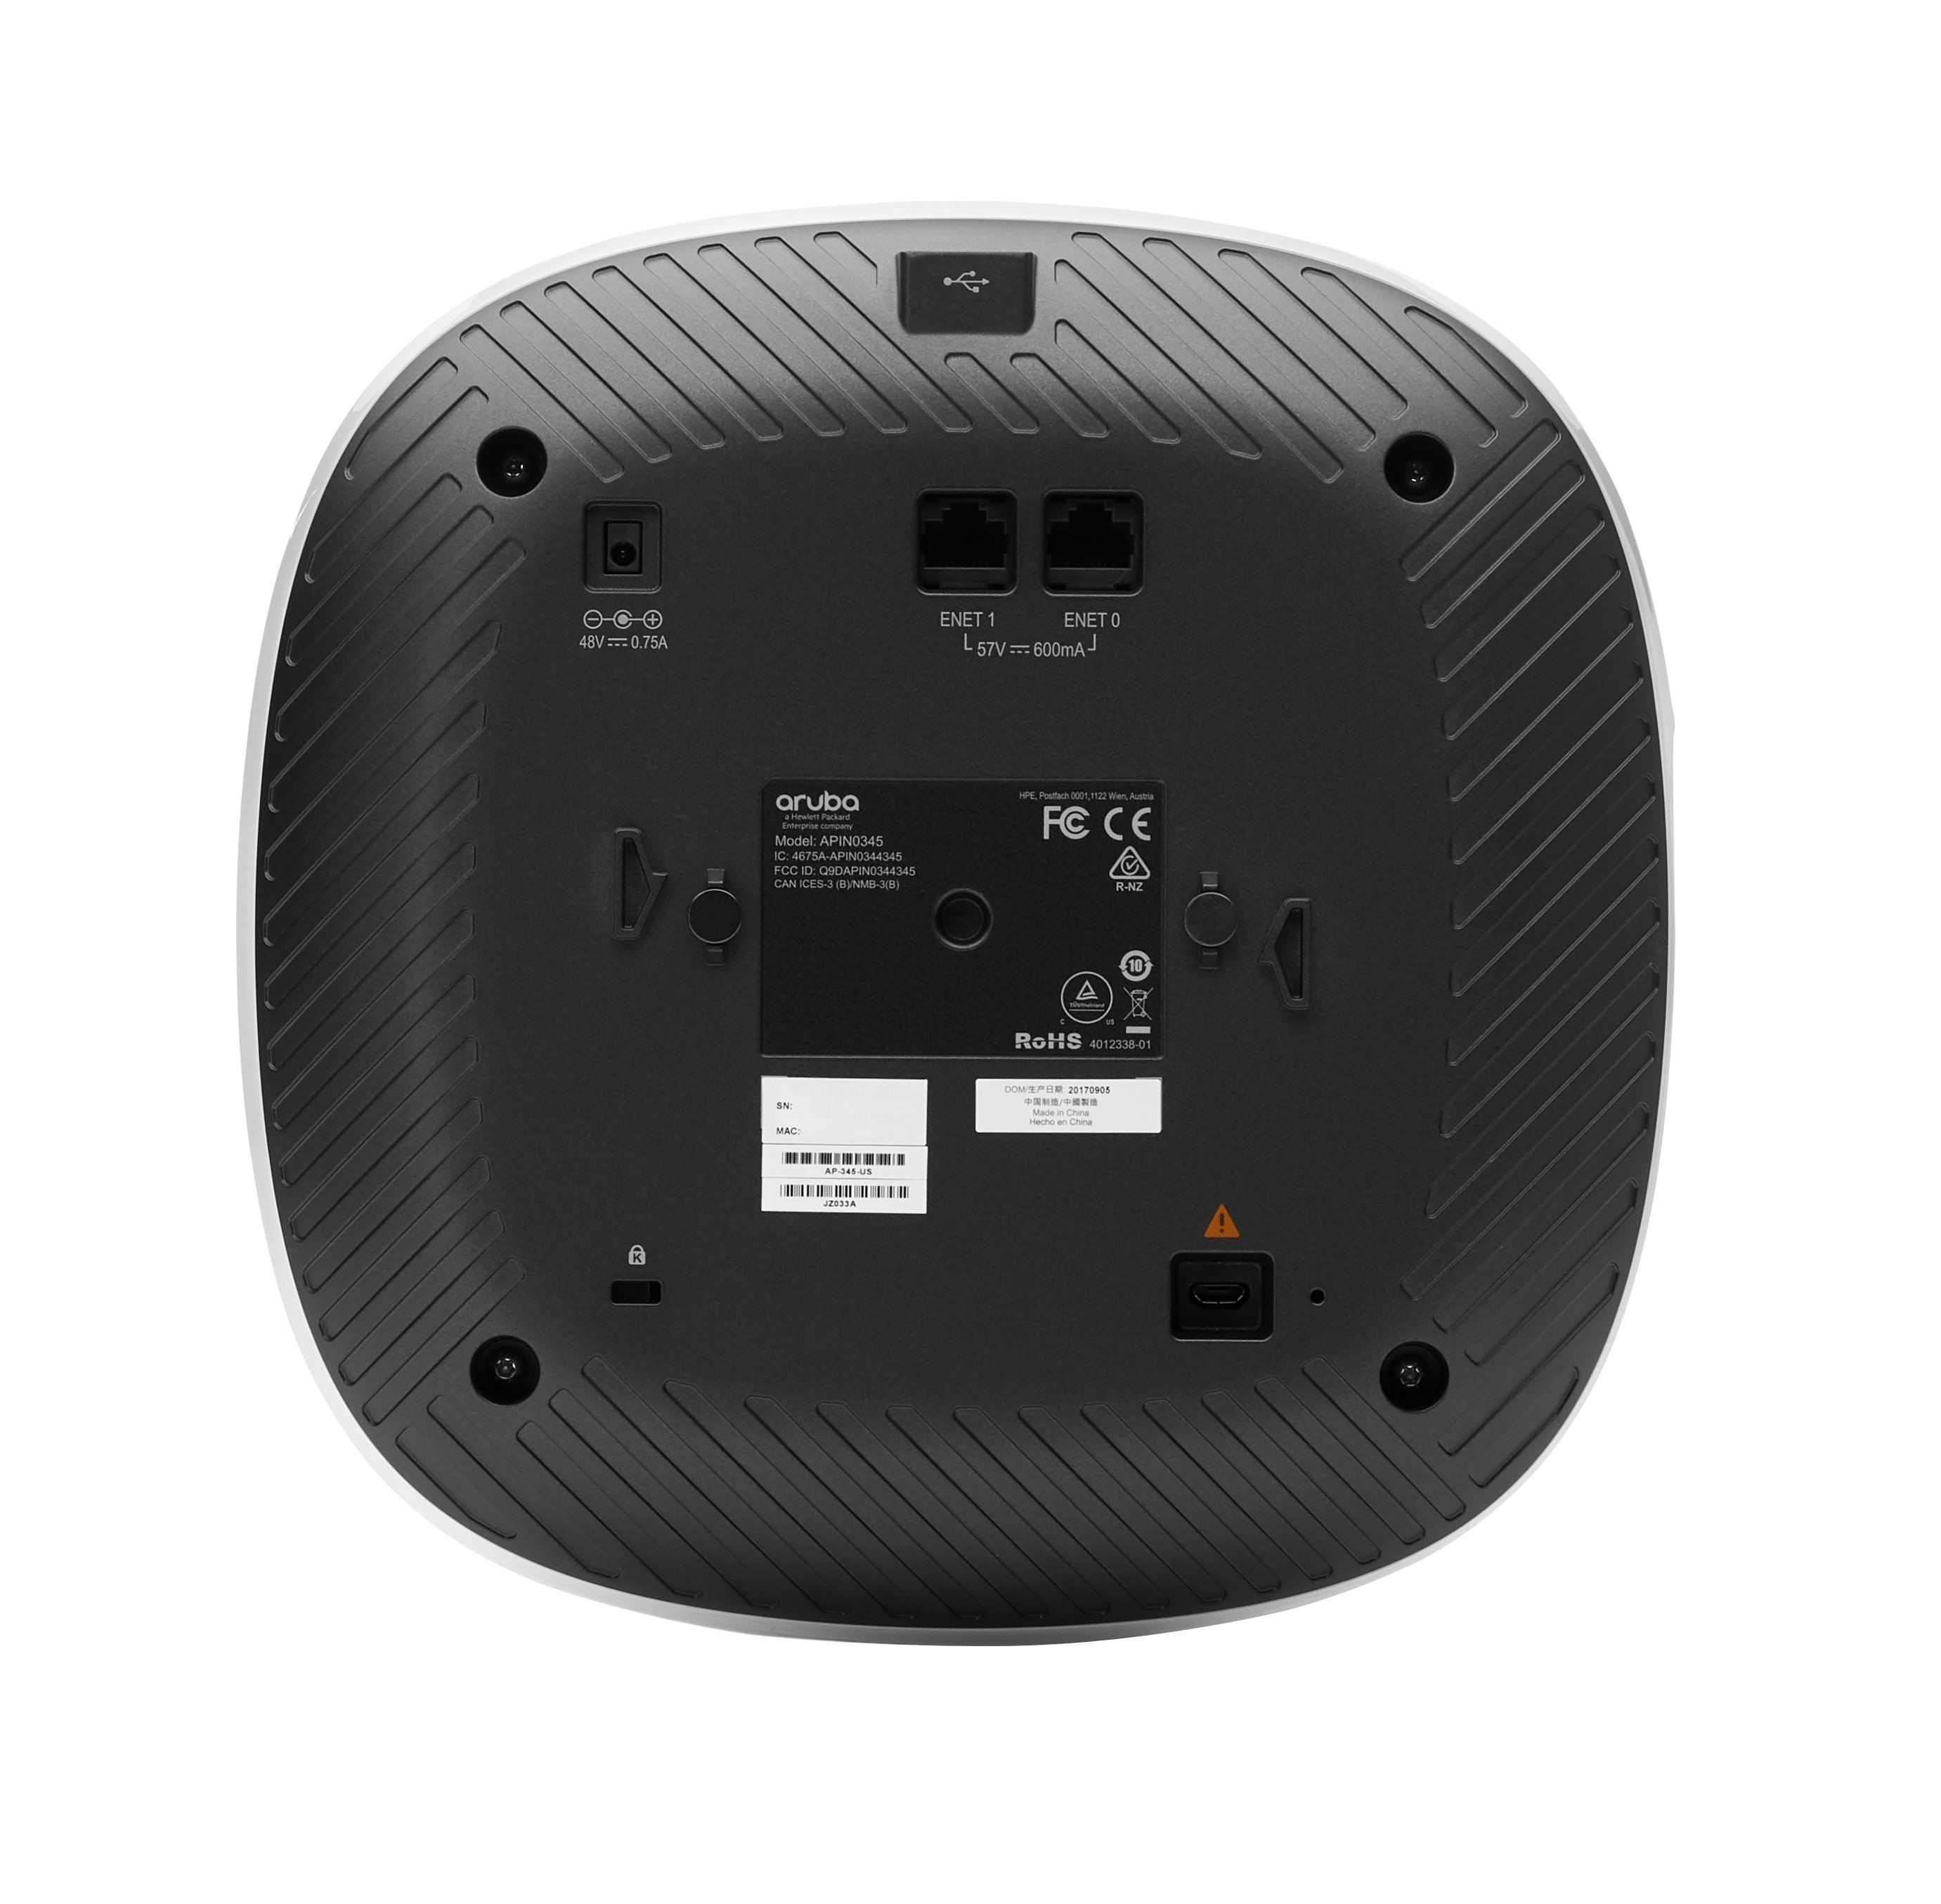 Aruba AP-345 (US) - wireless access point